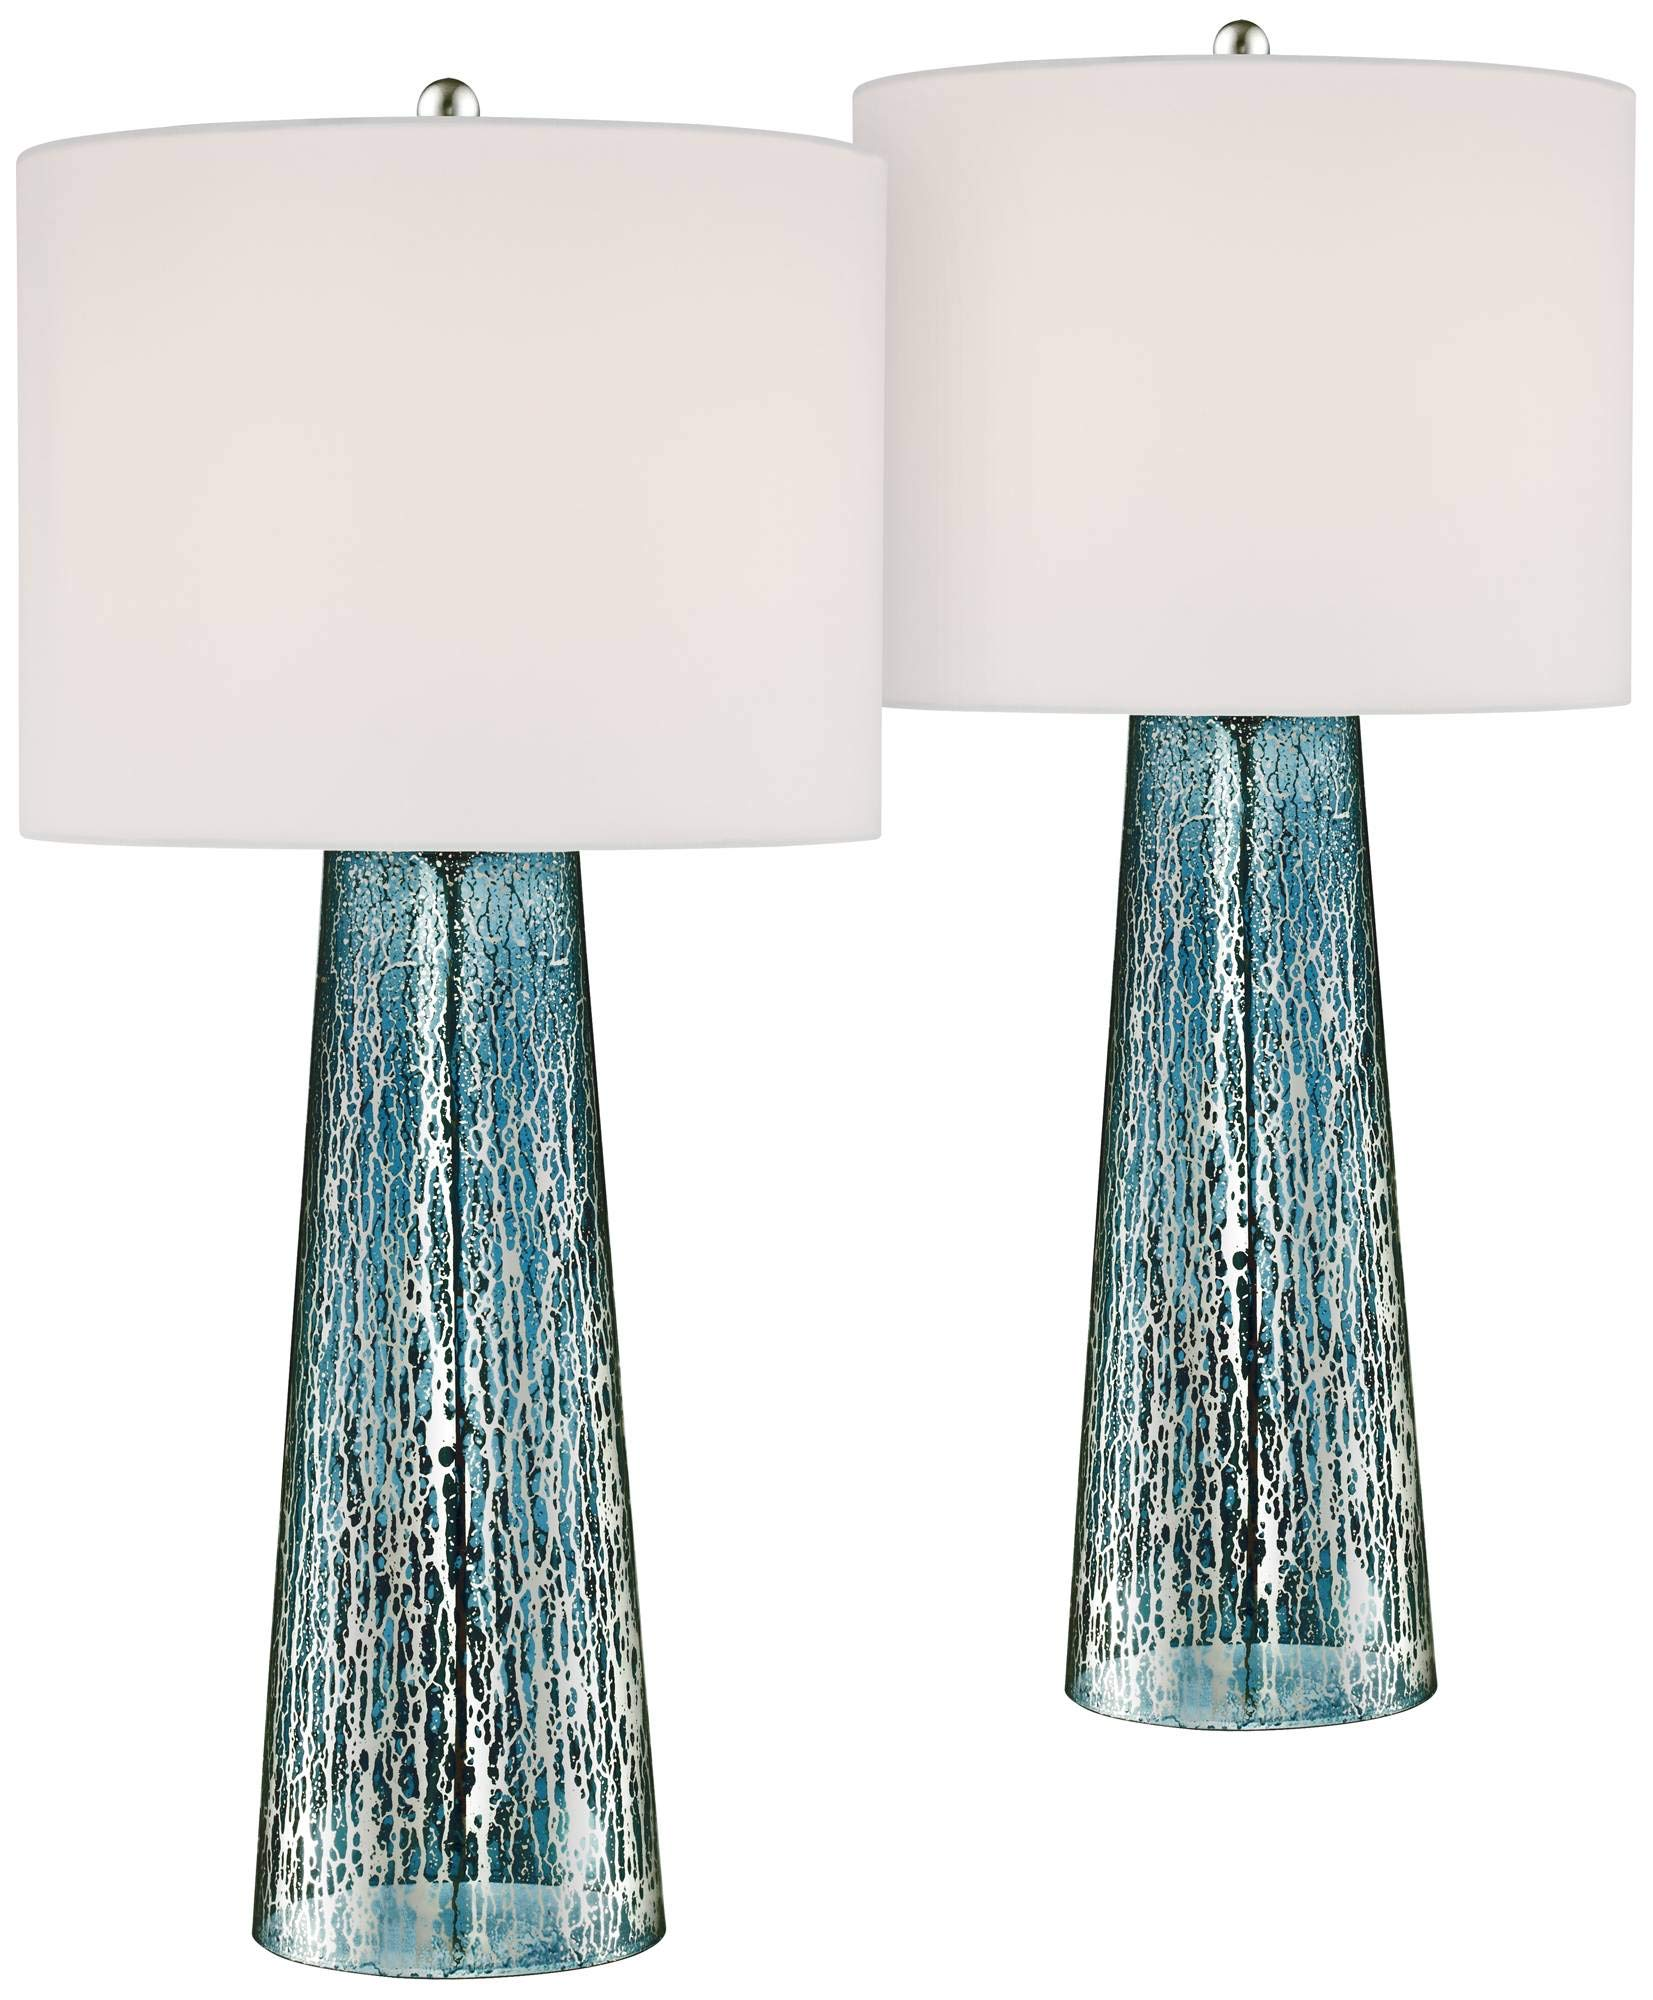 Marcus Coastal Table Lamps Set of 2 Blue Mercury Glass Tapered Column White Drum Shade for Living Room Family Bedroom - 360 Lighting